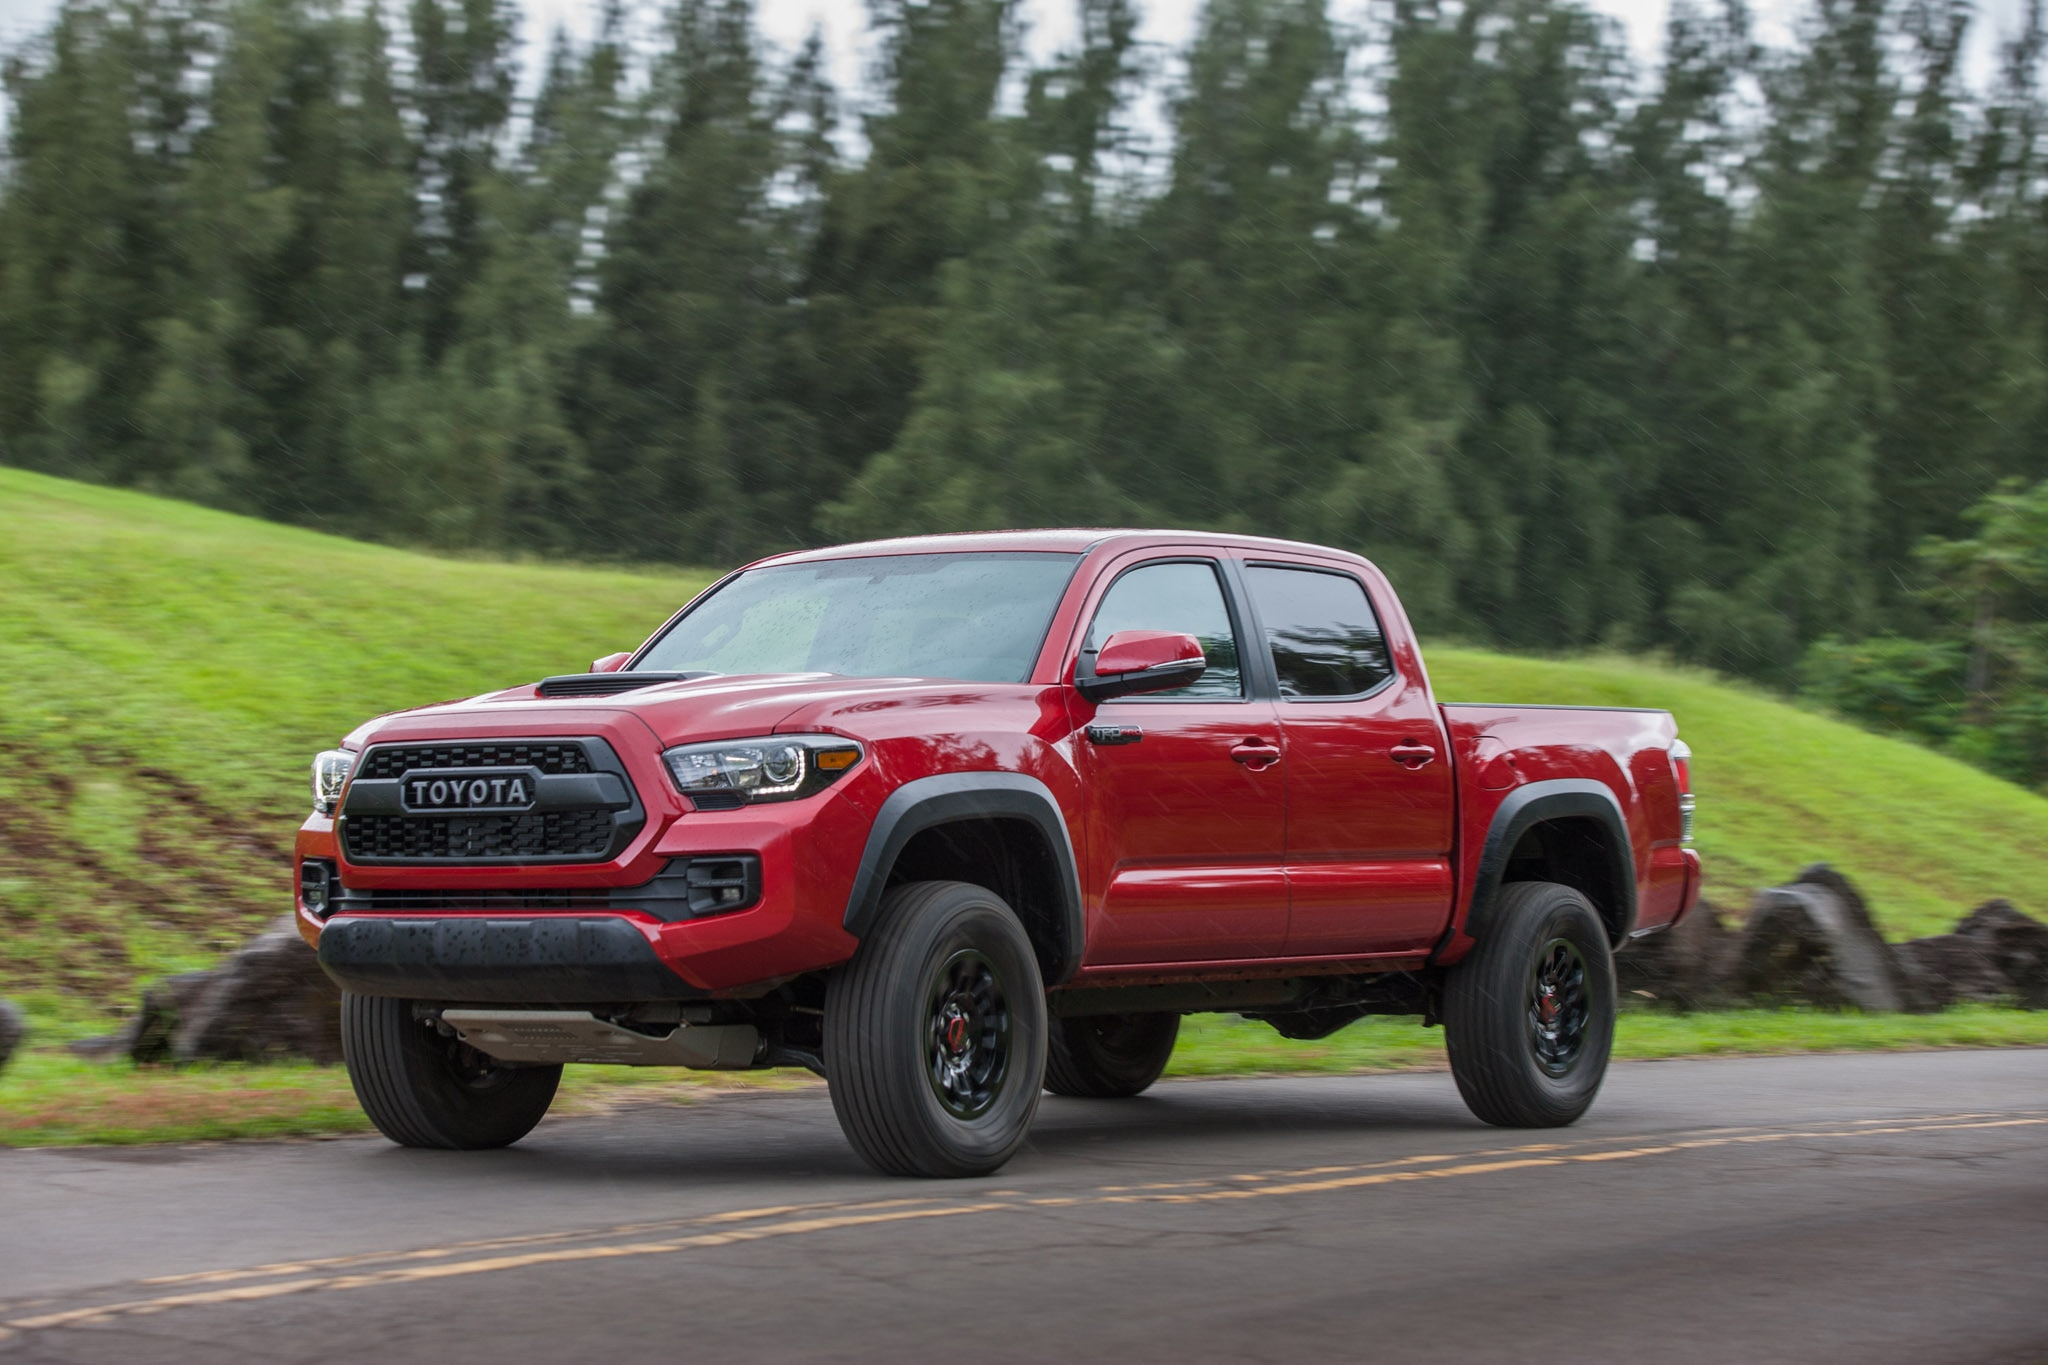 2017 Toyota Tacoma Trd Pro First Drive Review Automobile